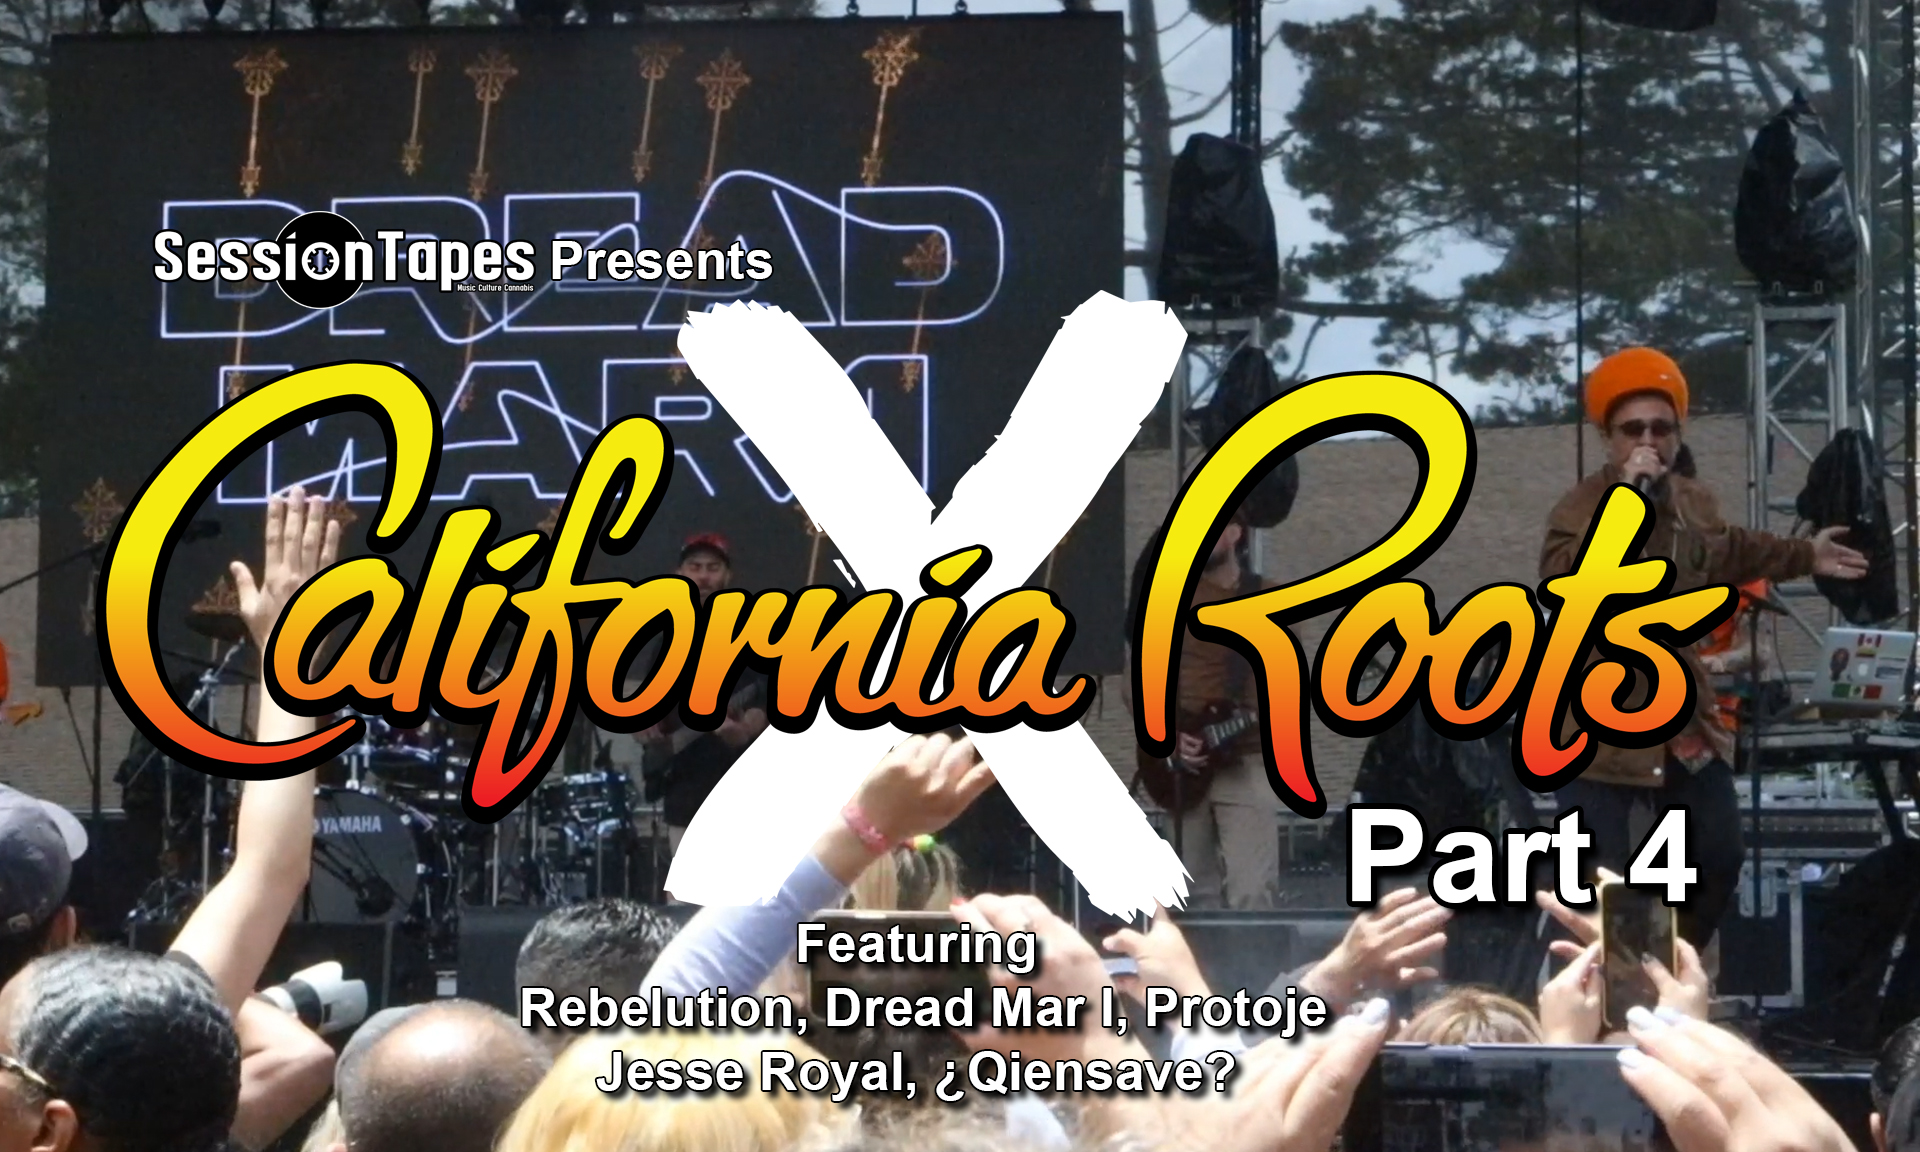 SessionTapes Presents California Roots X Part 4